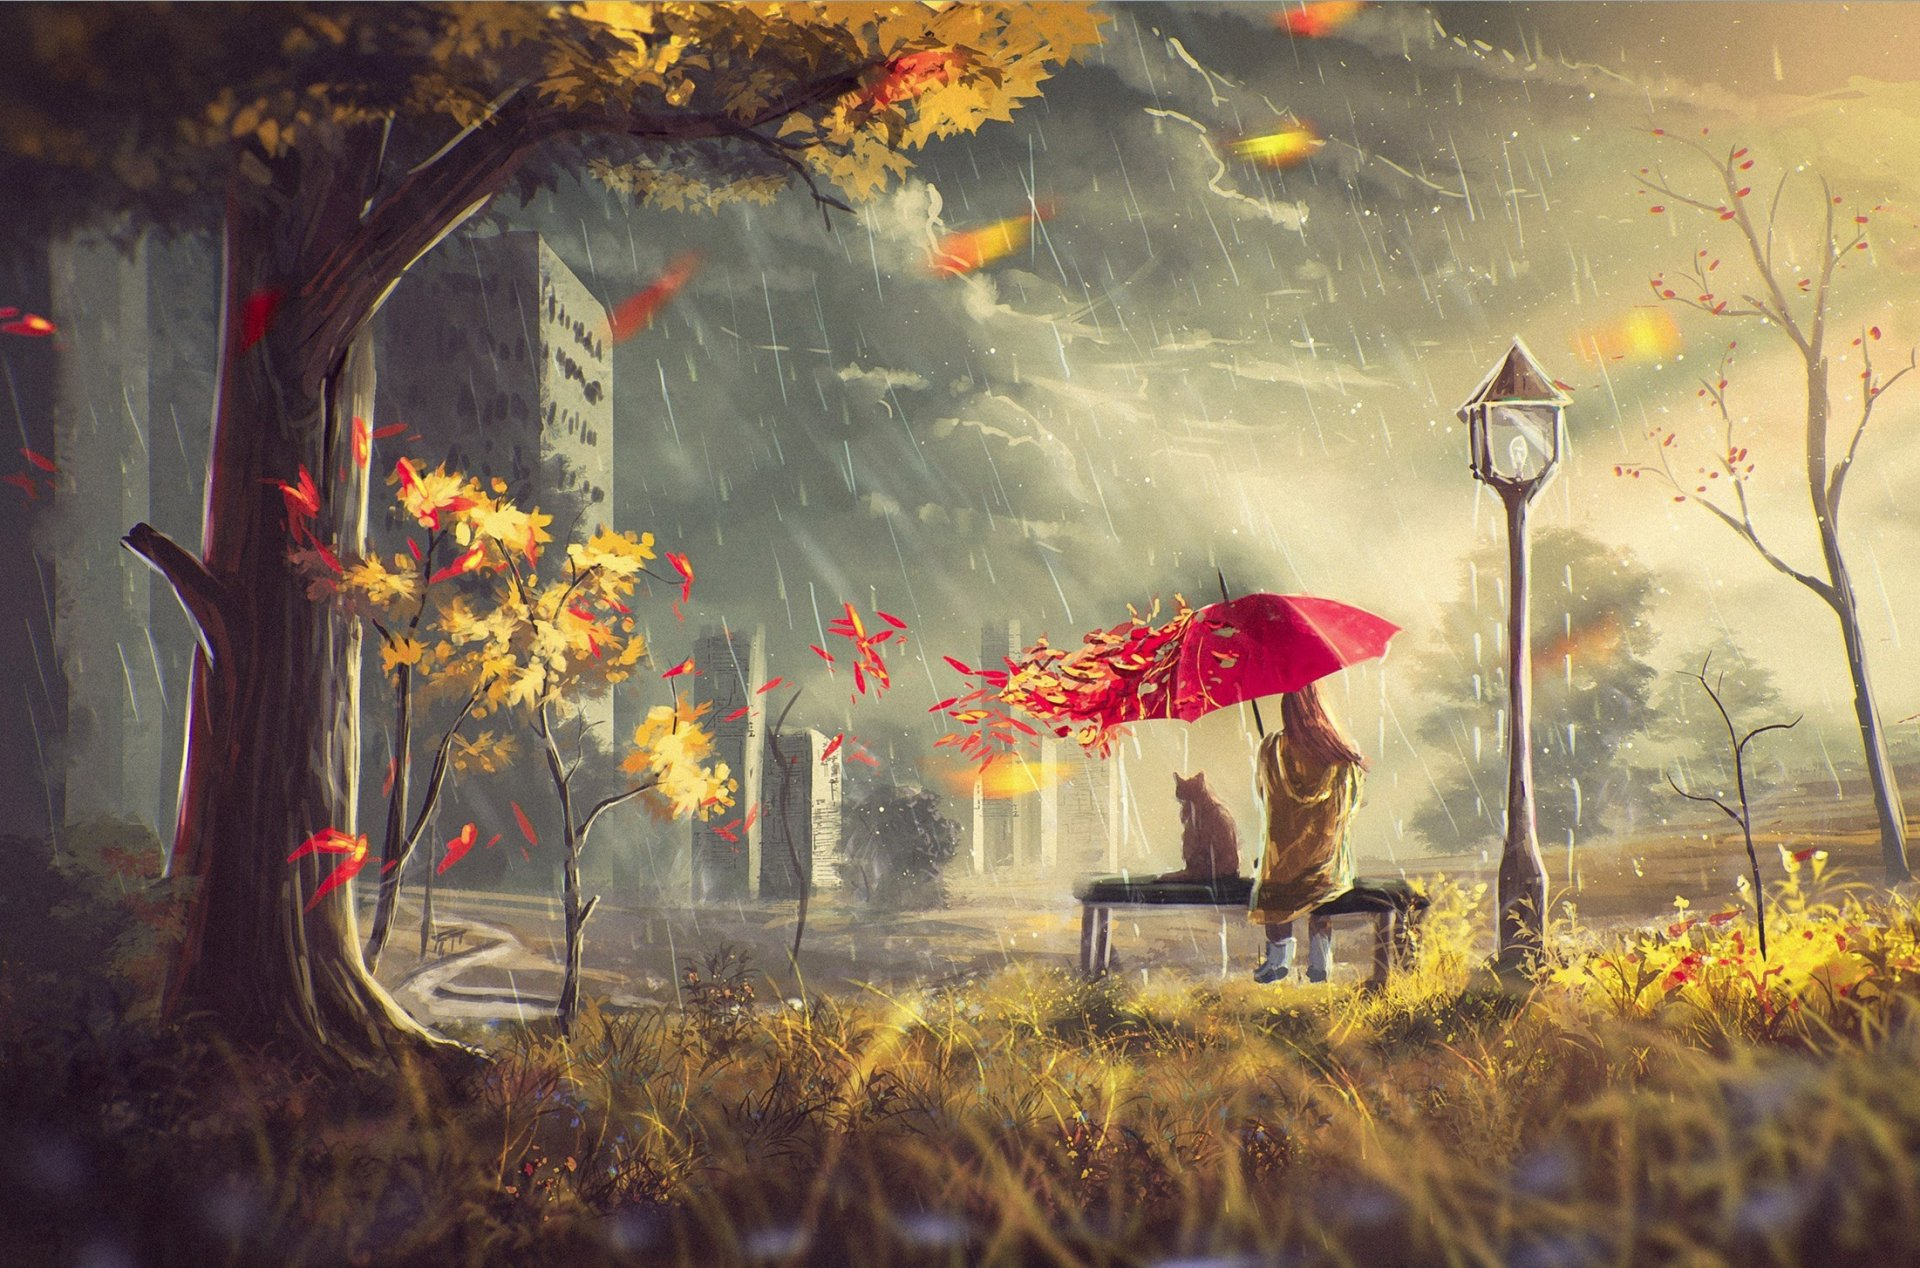 autumn street girl wind leaves umbrella cat house tree rain clouds